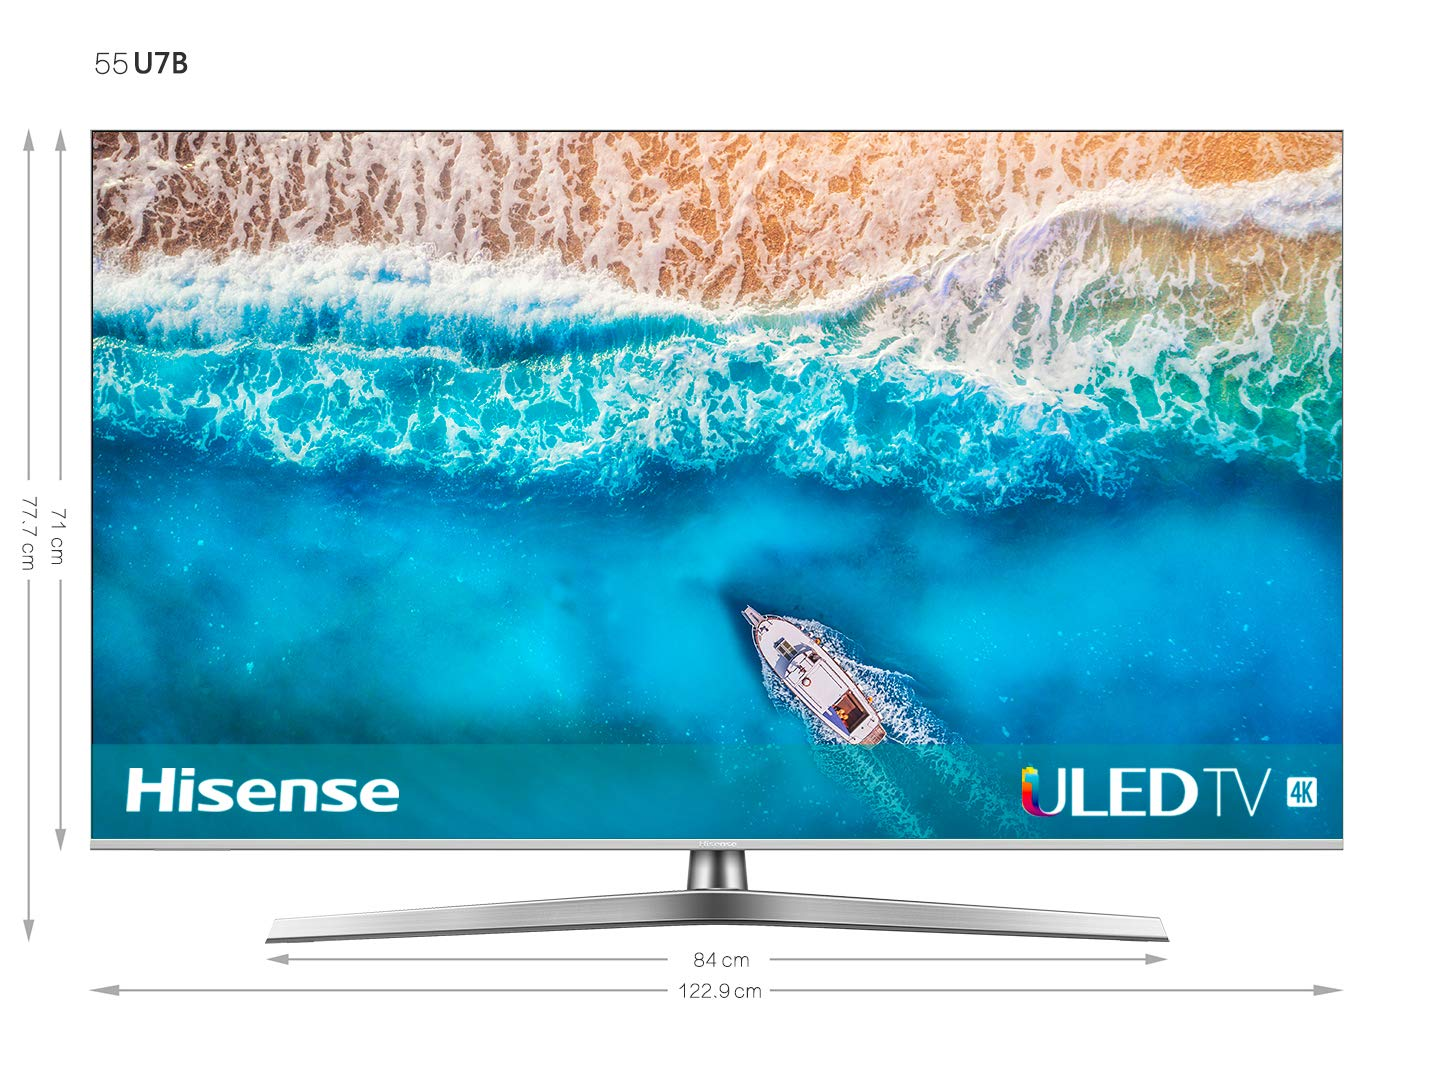 Hisense H55U7B, Smart TV ULED 4K Ultra HD, Dolby Vision HDR, HDR 10+, Audio Dolby Atmos, Ultra Dimming, 802.11ac, Dual-Band (2.4G and 5G) Ethernet RJ-45 HDMI USB Bluetooth, 55